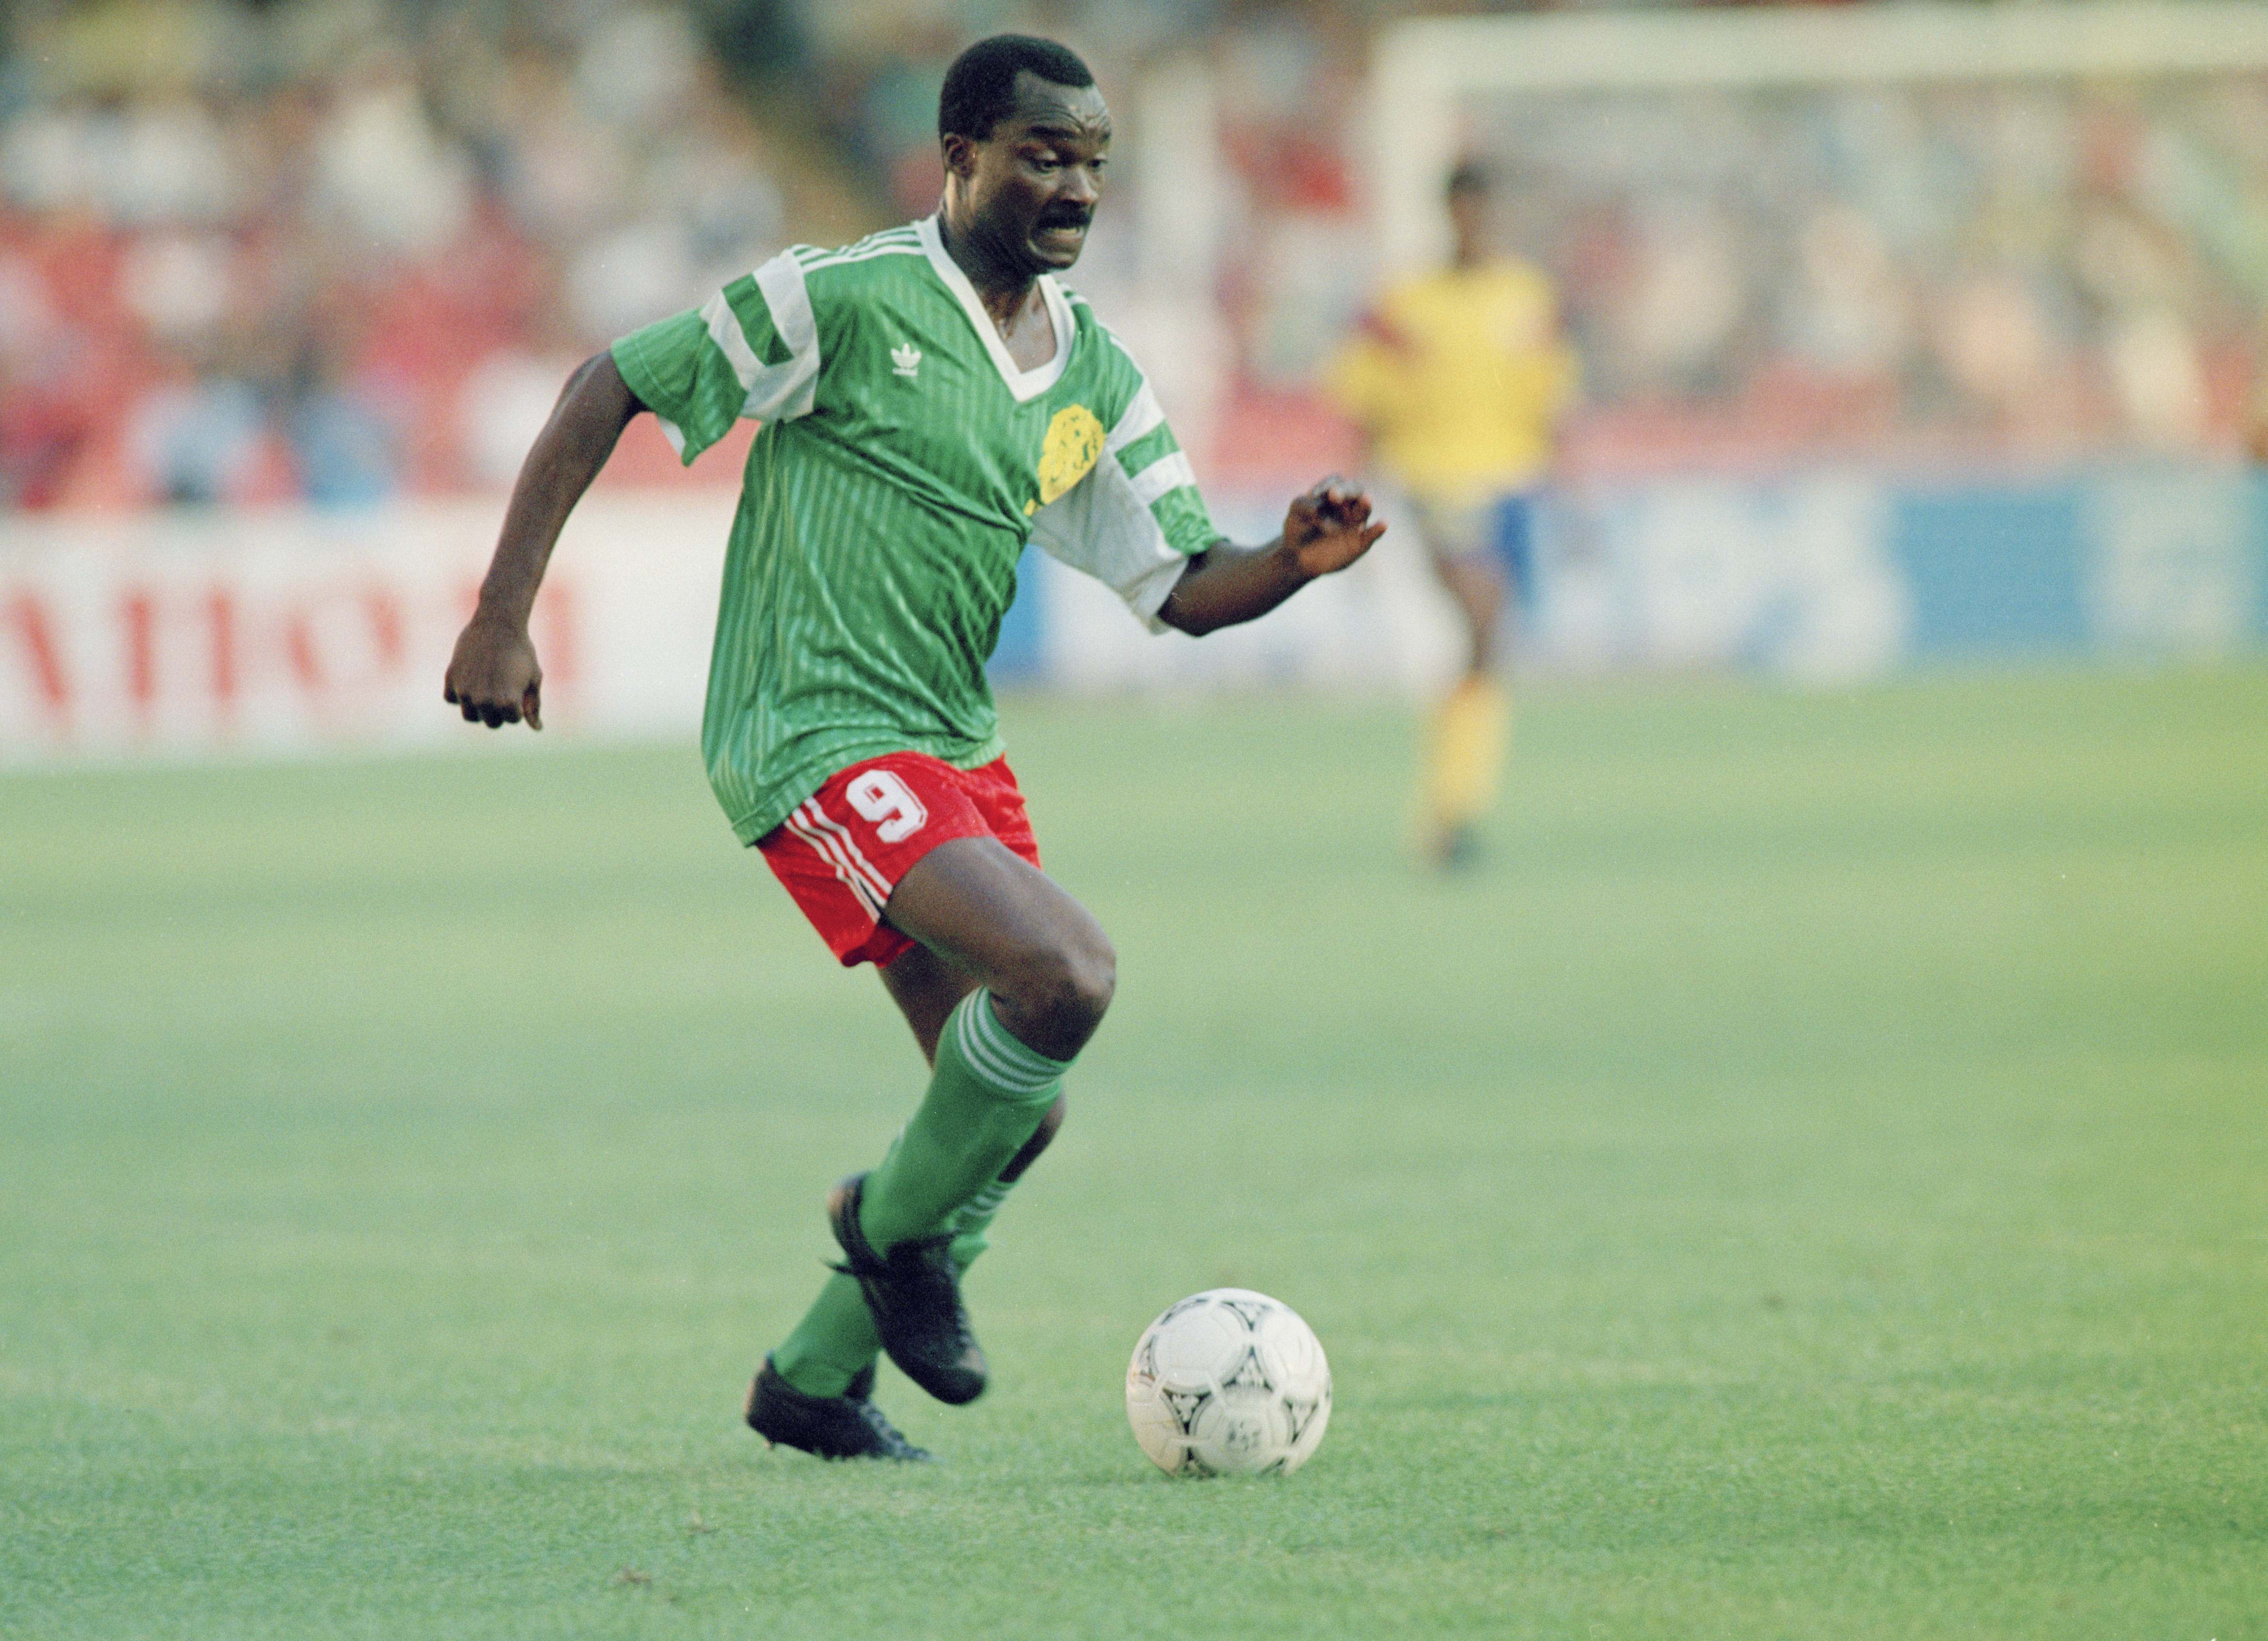 Cameroonian footballer Roger Milla in action against Colombia, during the knockout stage of the World Cup, at the Stadio San Paolo, Naples, Italy, 23rd June 1990. Cameroon woin the match 2-1. (Photo by Getty Images)